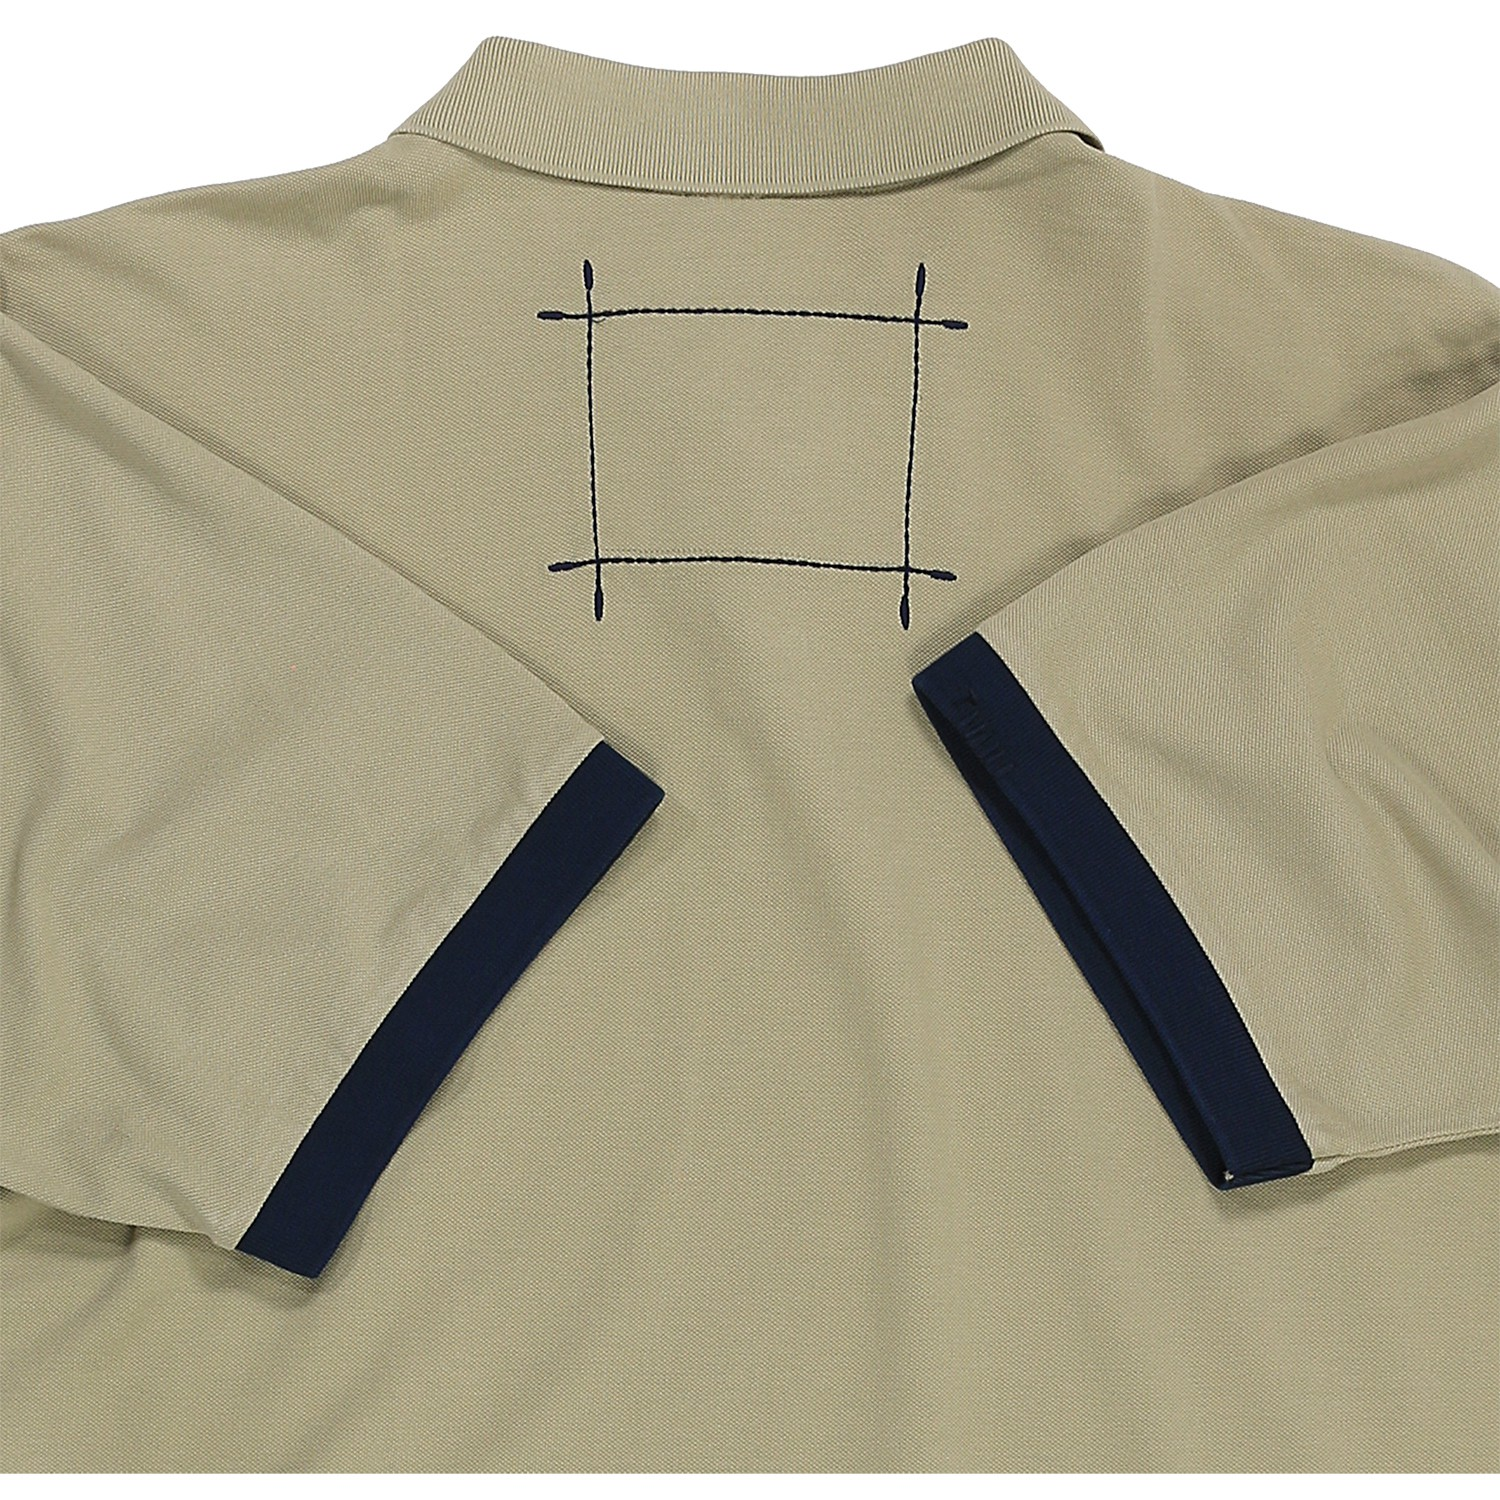 Detail Image to Poloshirt beige in oversize up to 6XL